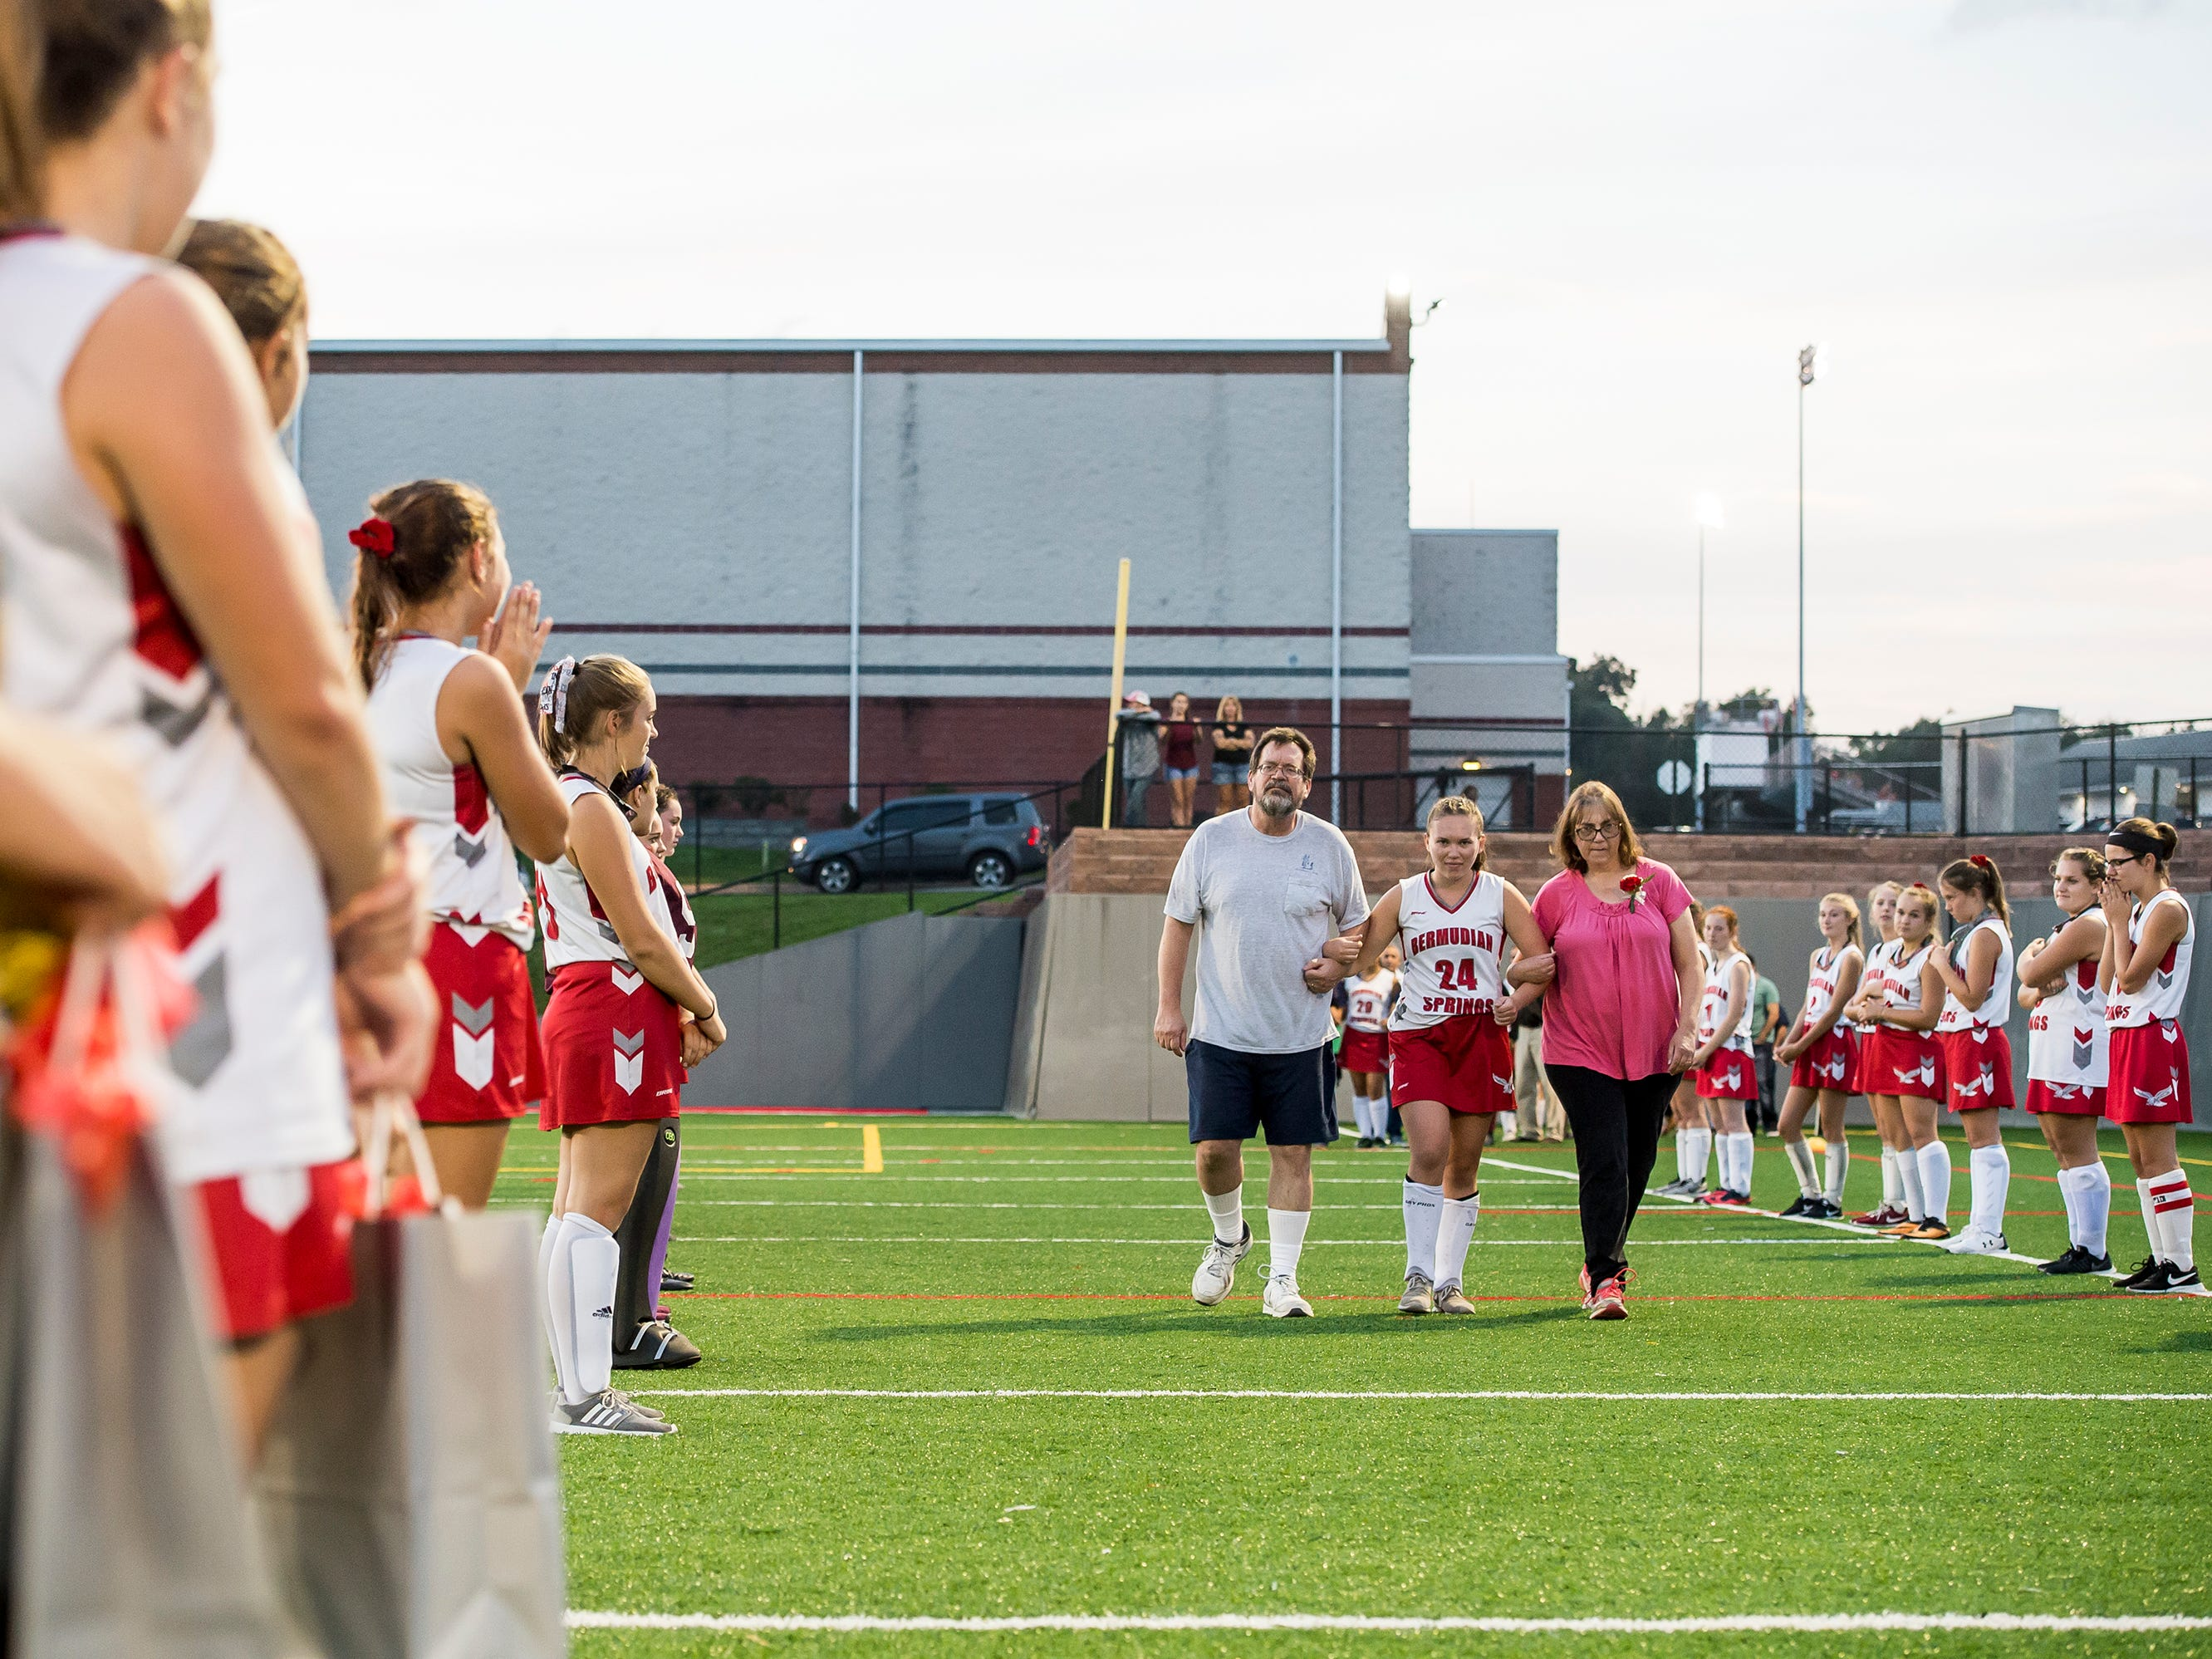 Bermudian Springs senior Bekah Eaton is recognized during a senior appreciation night following a game against Littlestown on Tuesday, October 9, 2018.